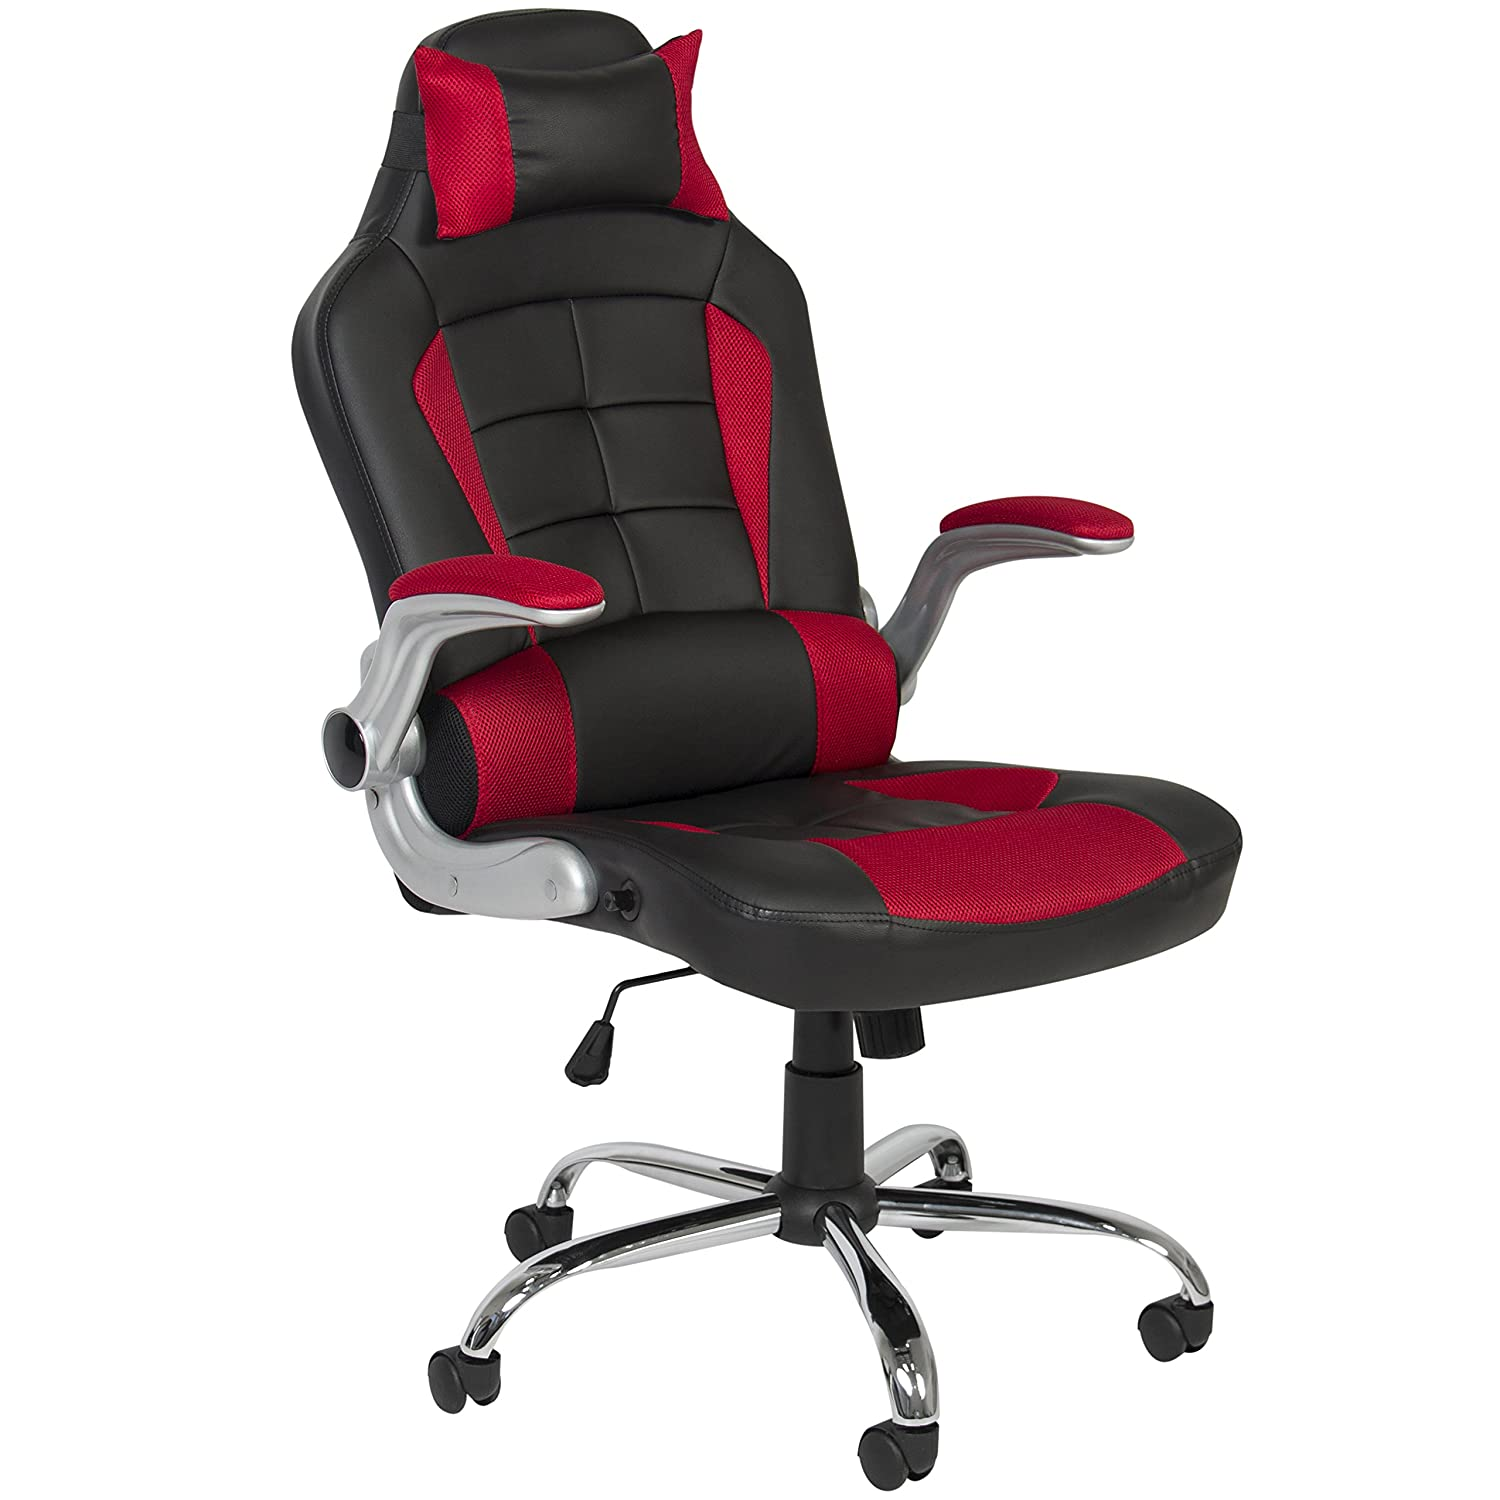 Best Choice Products BCP Deluxe Ergonomic Racing Style PU Leather Office Chair Swivel High Back Red